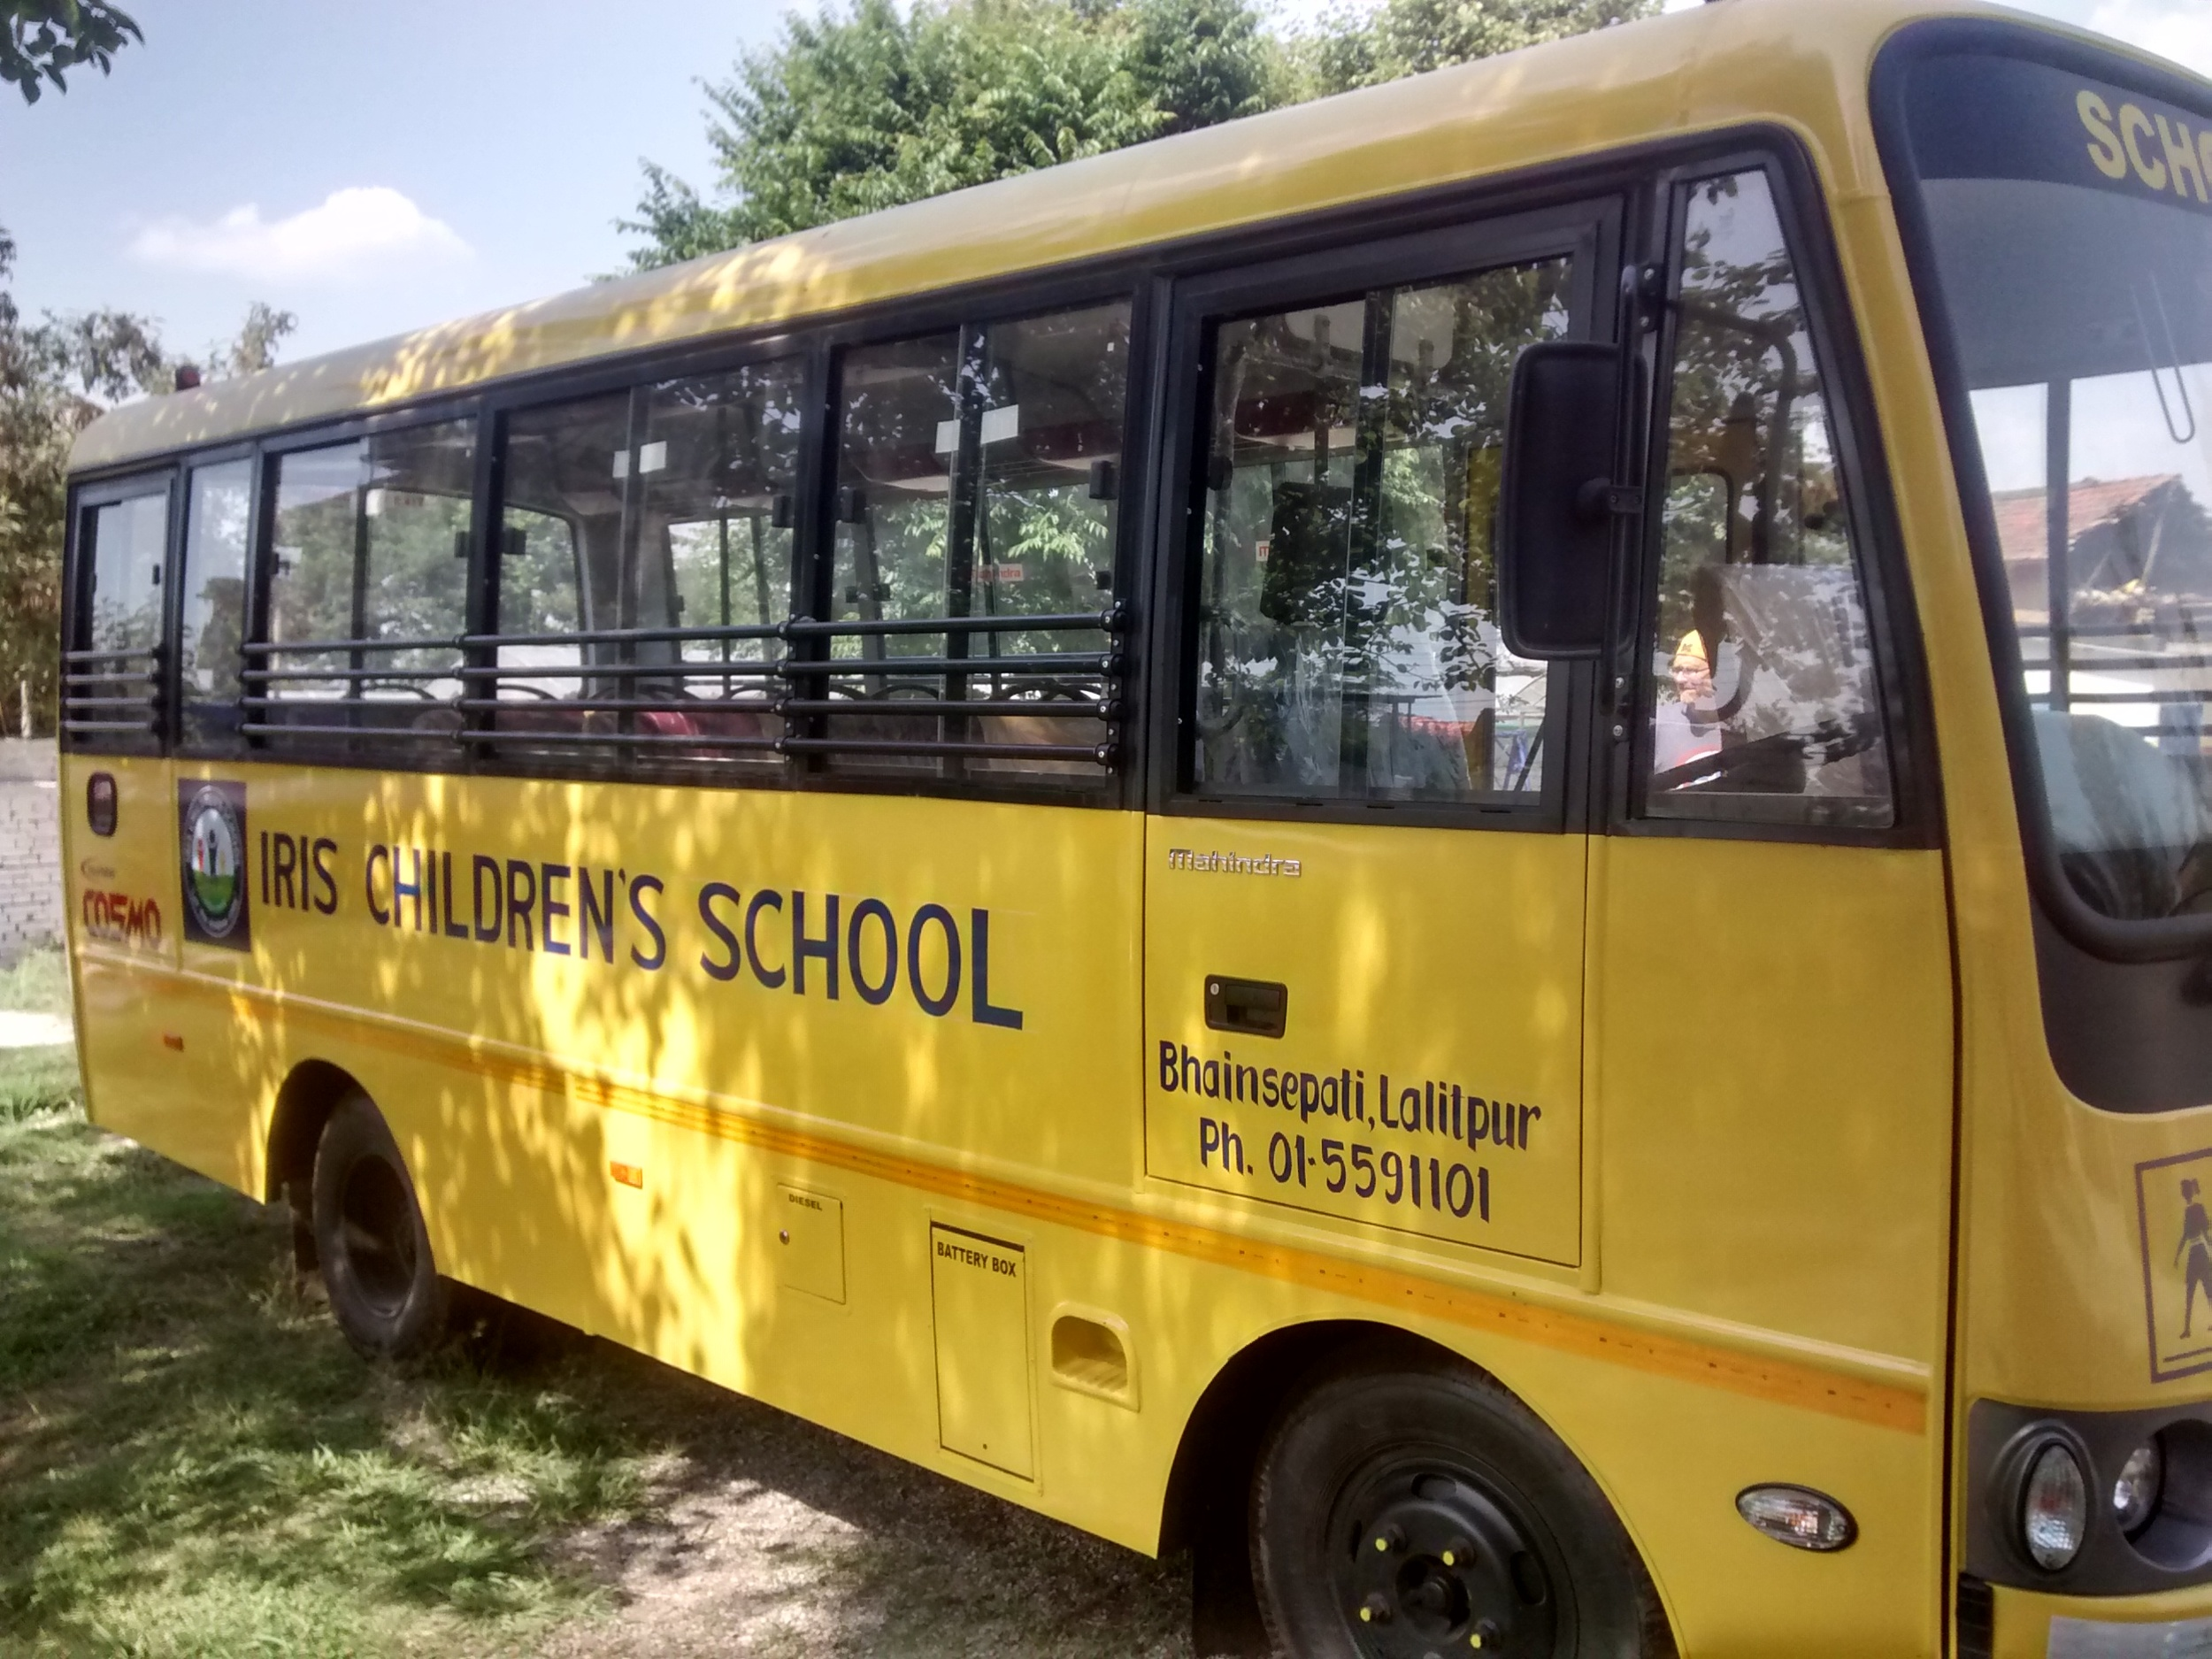 This year God provided the funds to purchase a school bus!